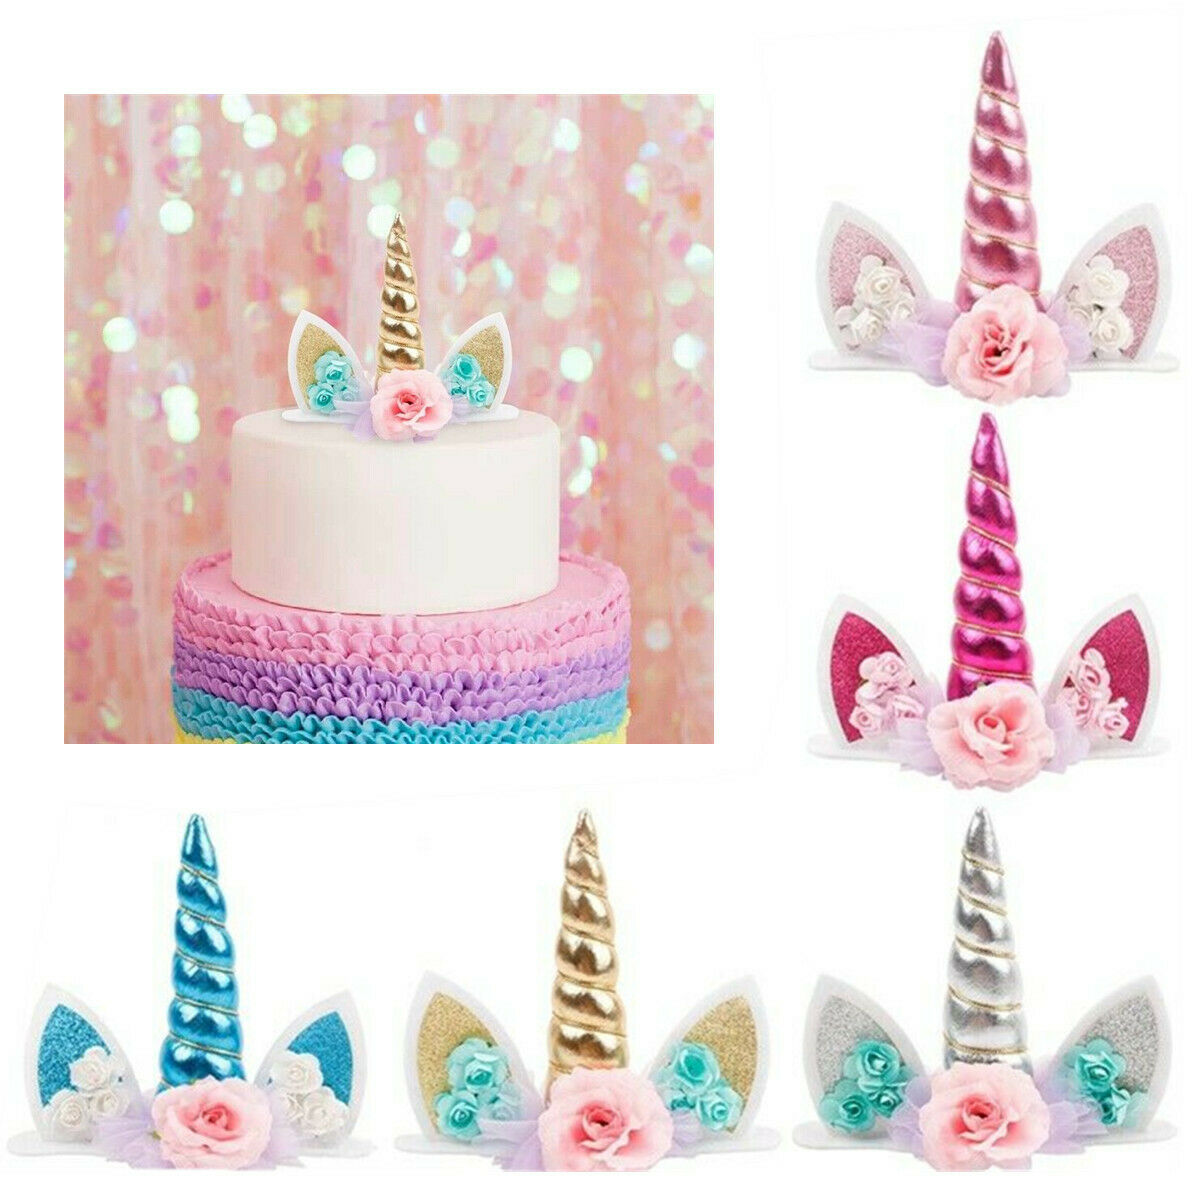 Details about Glitter Unicorn Cake Topper Cupcake Birthday Decor Children  Party Boy Girl Props